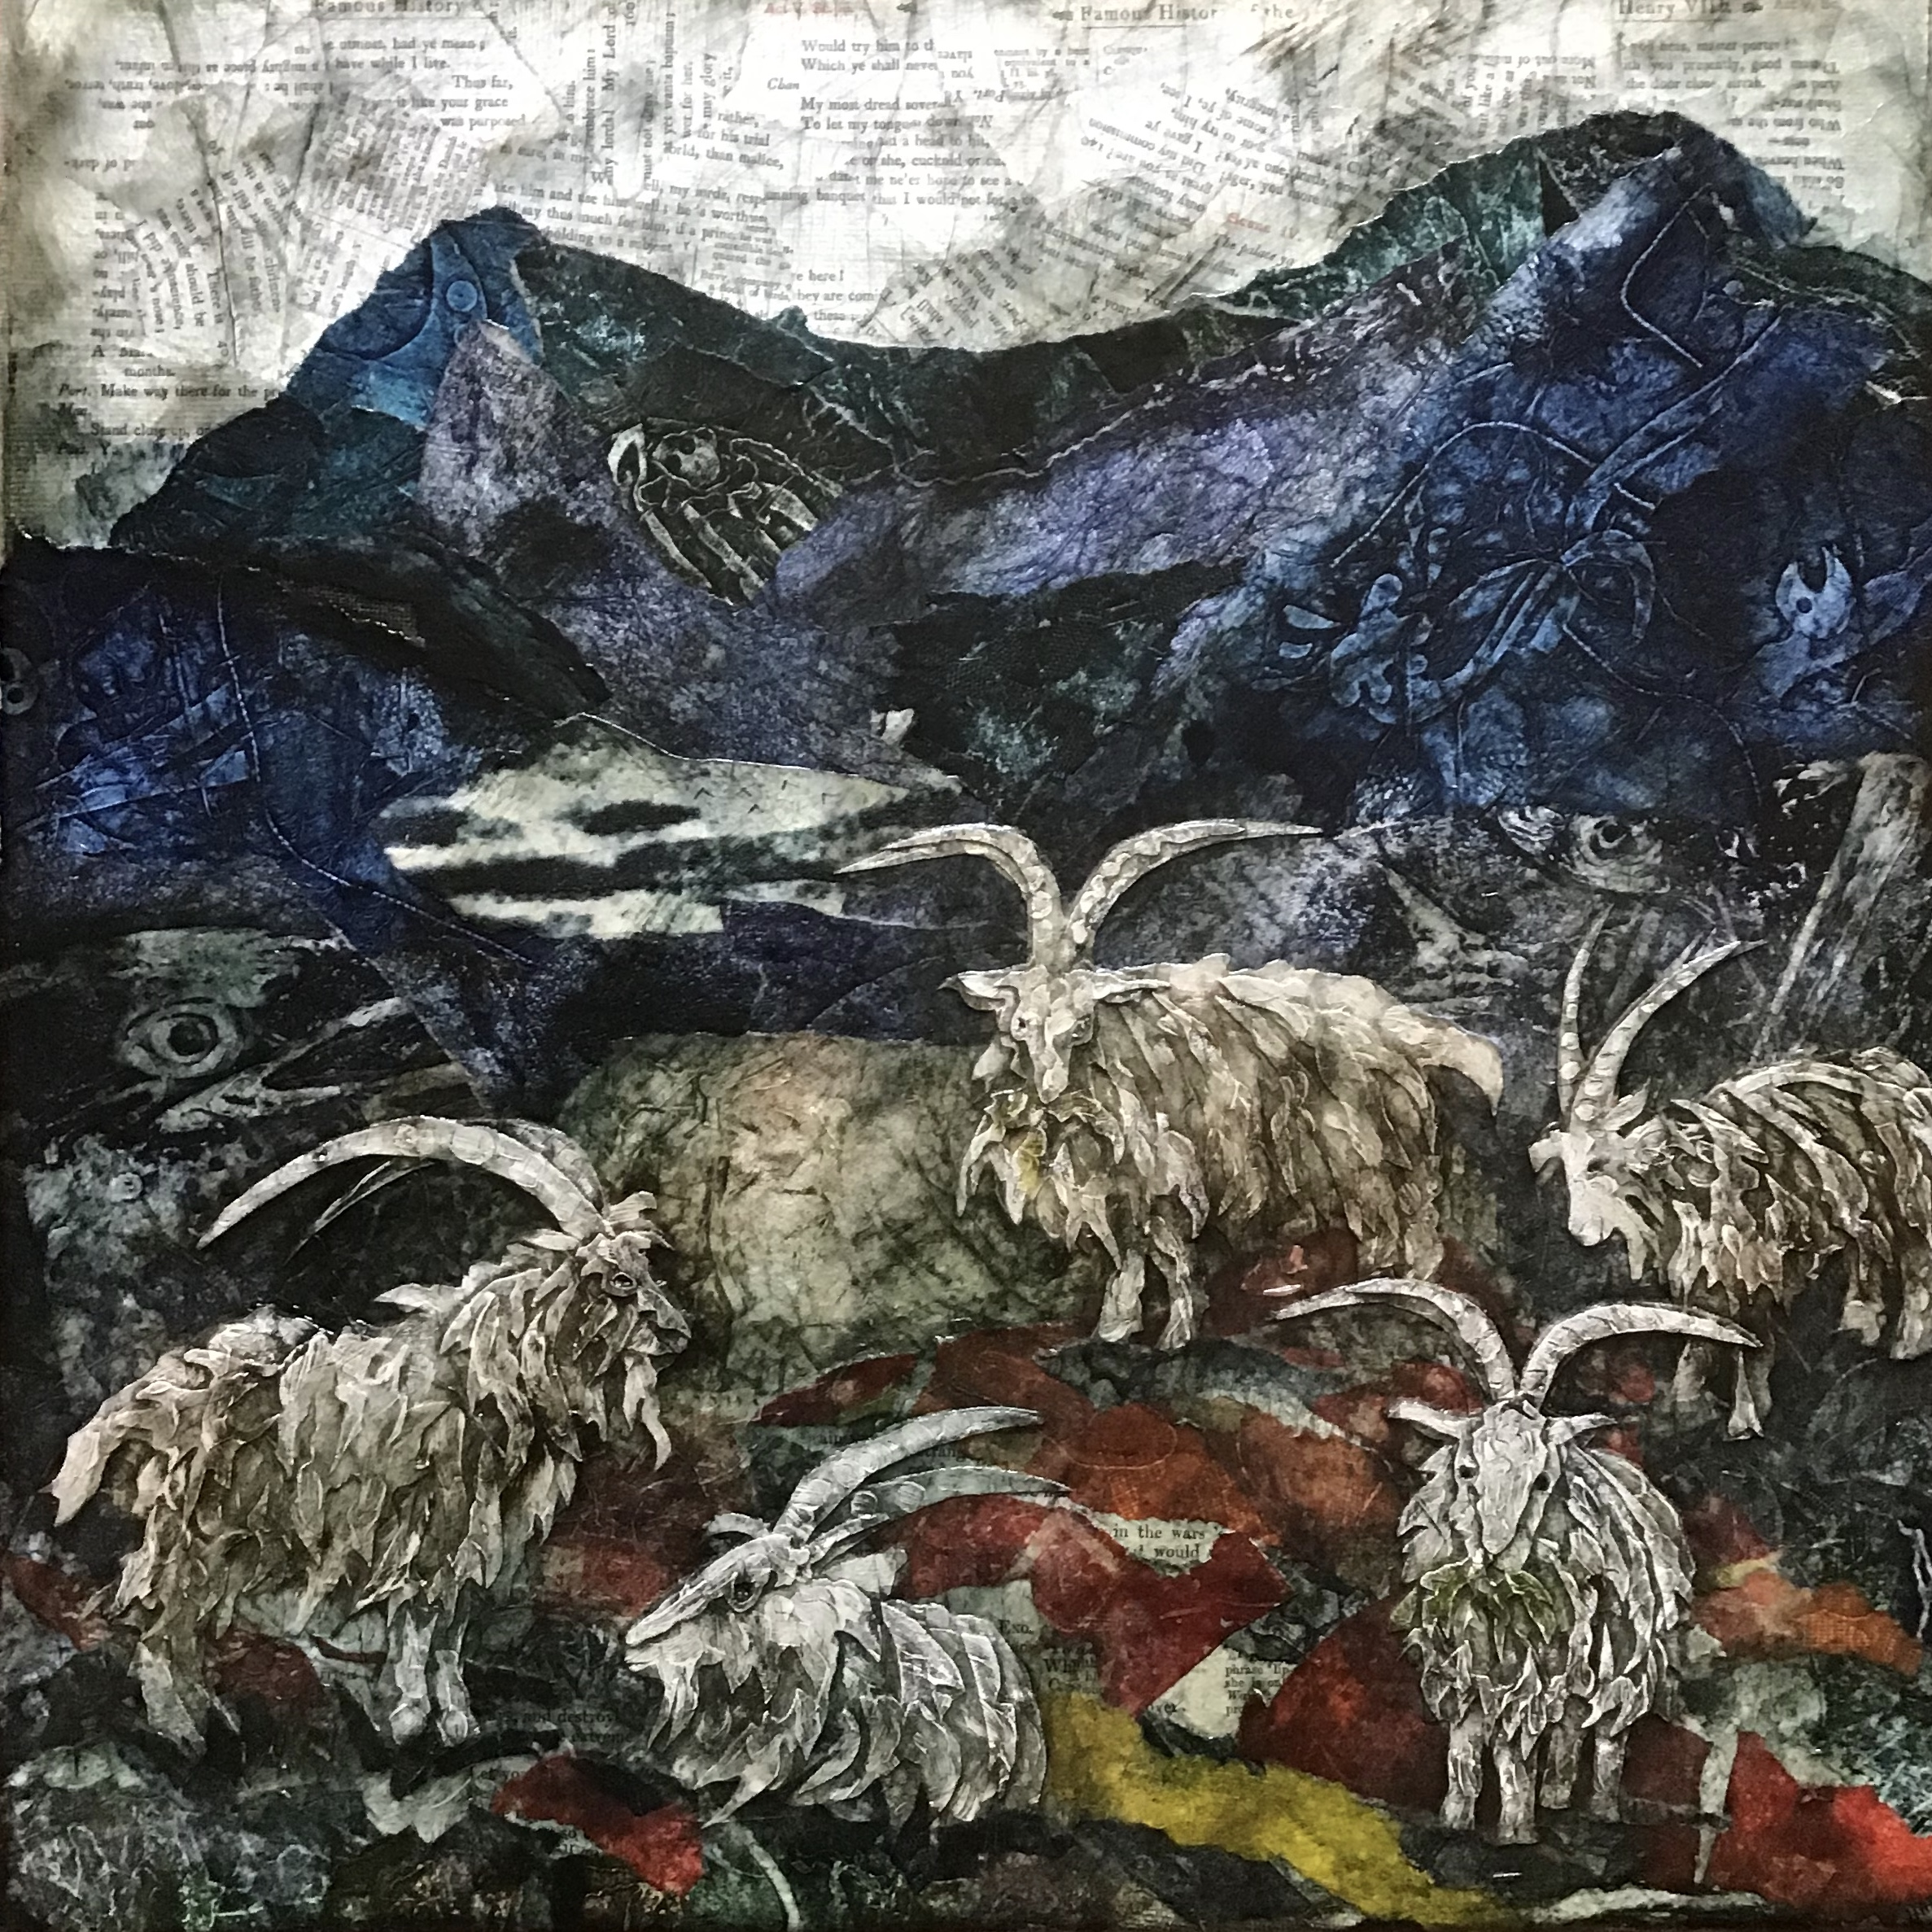 Judith Harrison, 'Feral Goats.' Mixed Media on Canvas. Framed Size: 43cm x 43cm. SOLD